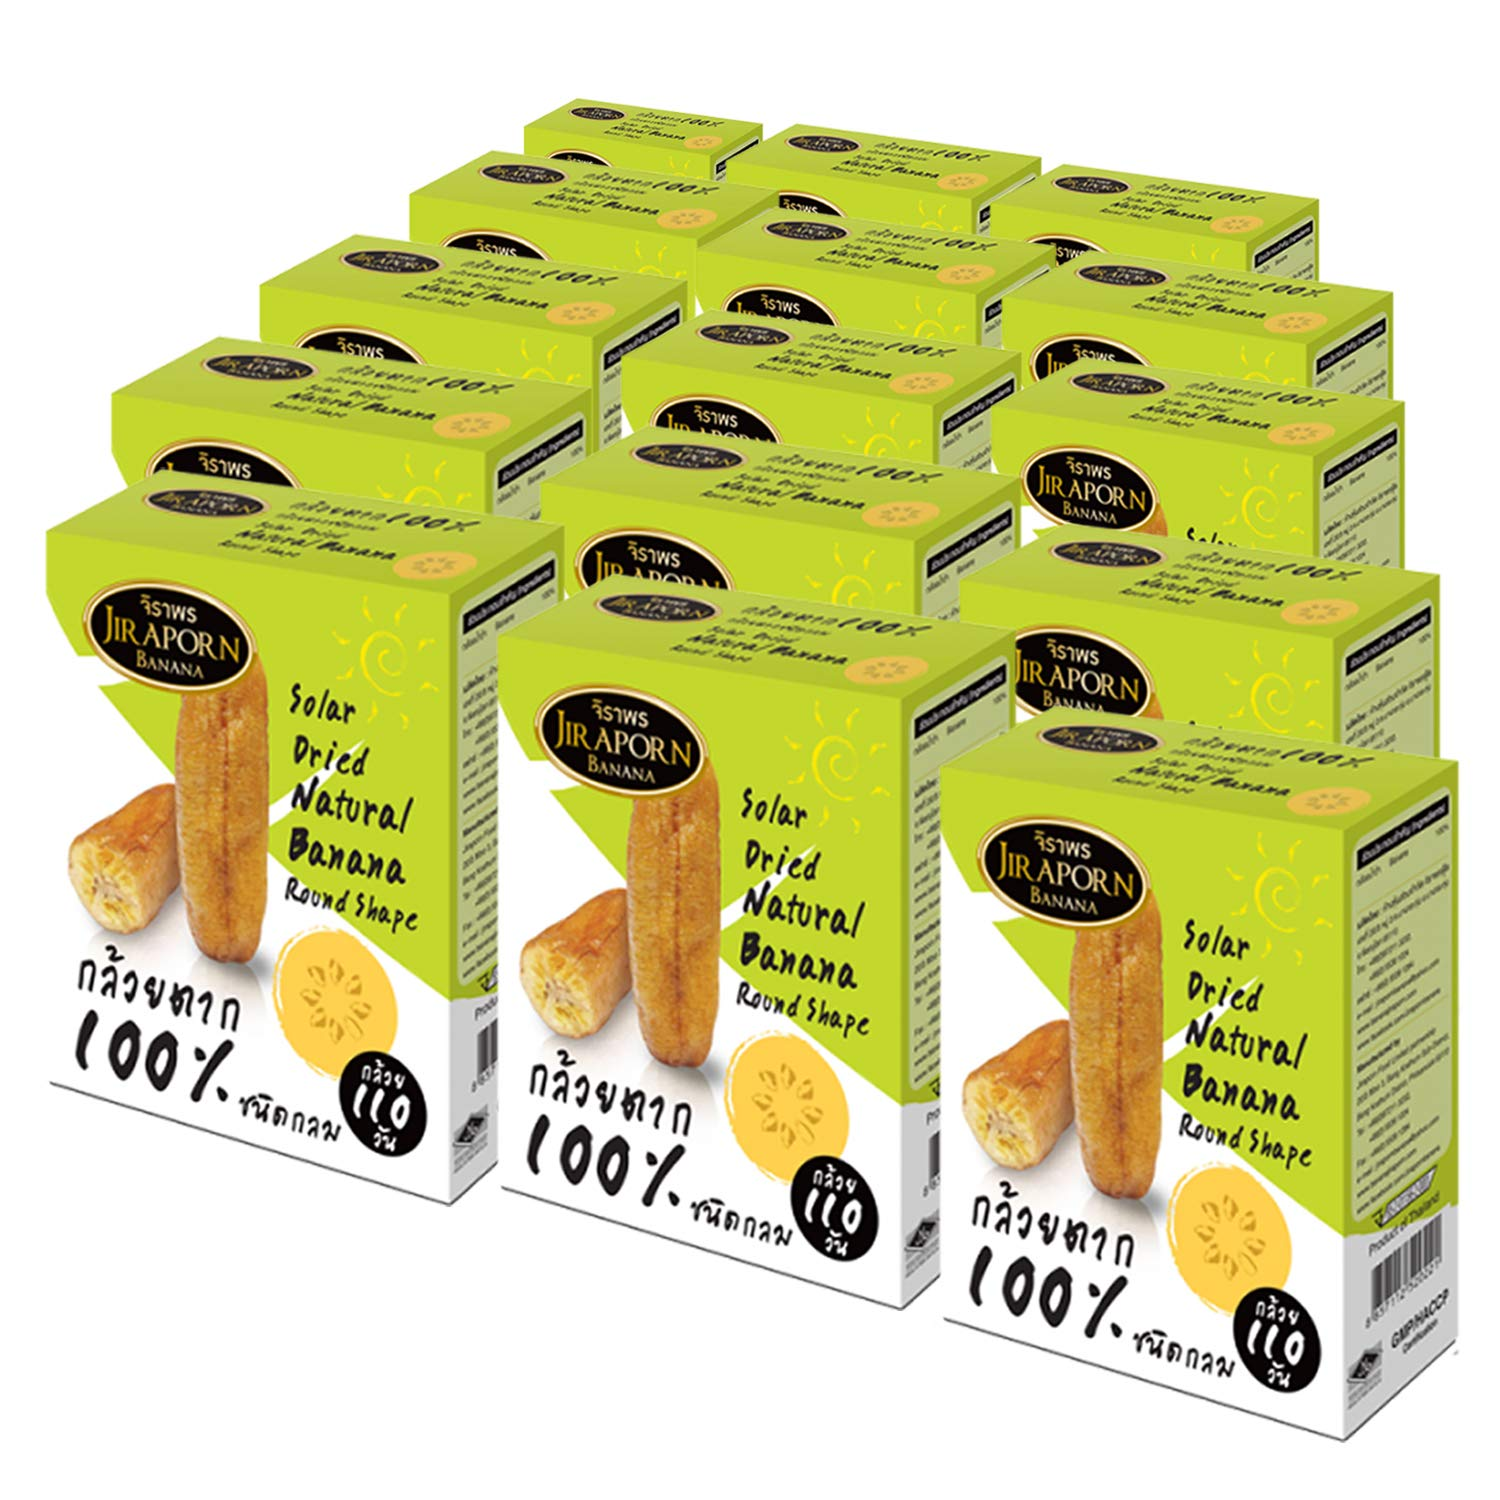 WHOLESALE Jiraporn Solar Dried Natural Banana Round Shape 240g (Pack of 16)